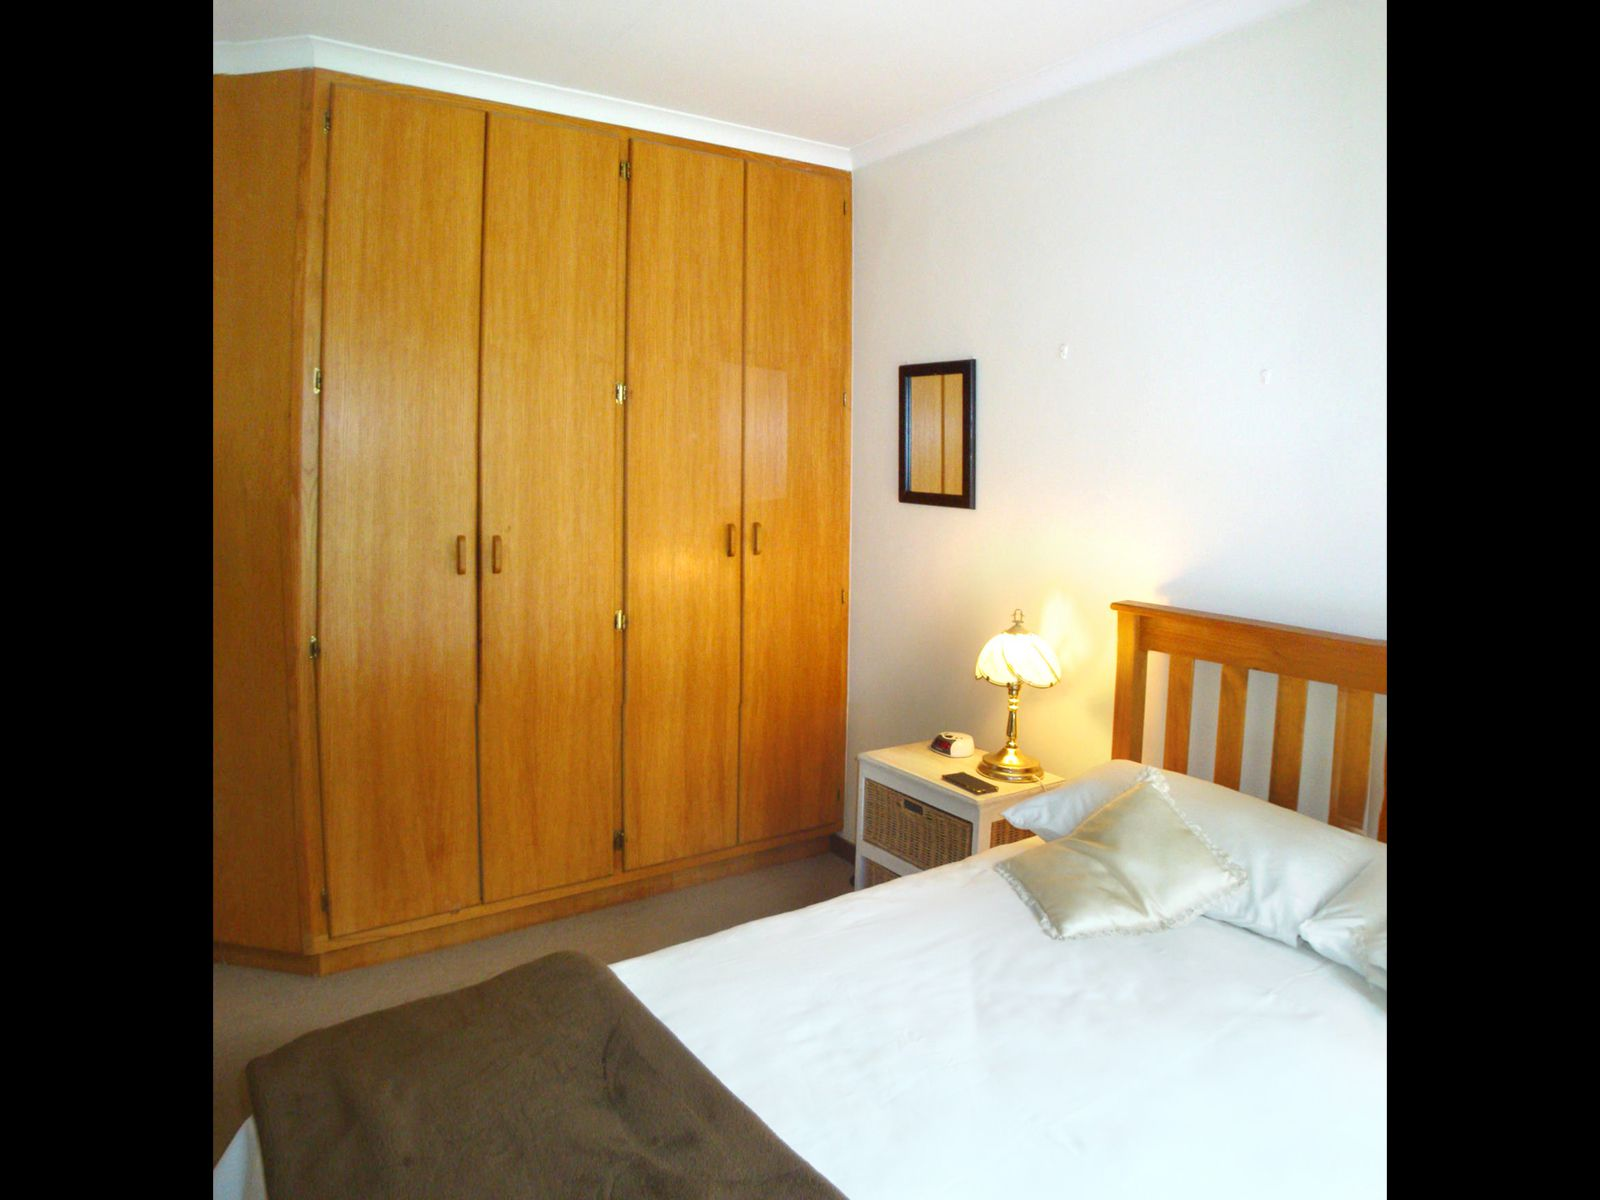 Strand South property for sale. Ref No: 13674227. Picture no 9